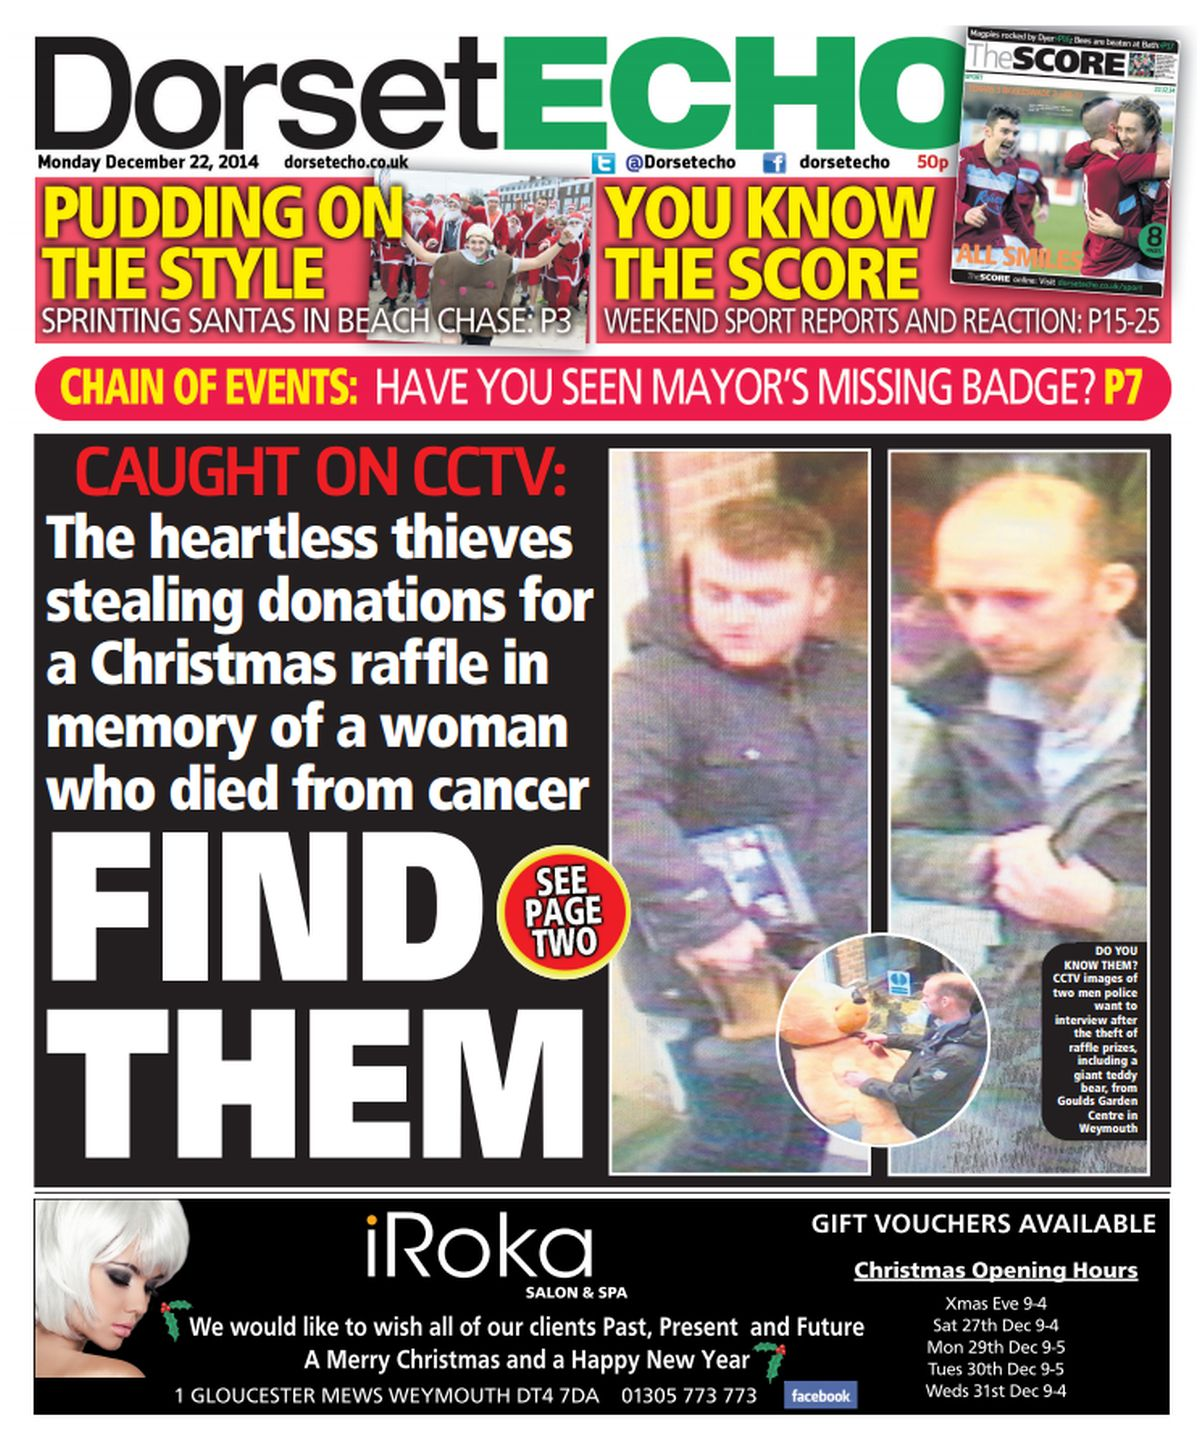 RT @PokerDaz9: @msm4rsh please share this to help catch these callous thieves. http://t.co/kivd9cK7G5 #regionalfronts http://t.co/qUVZhAbvA…